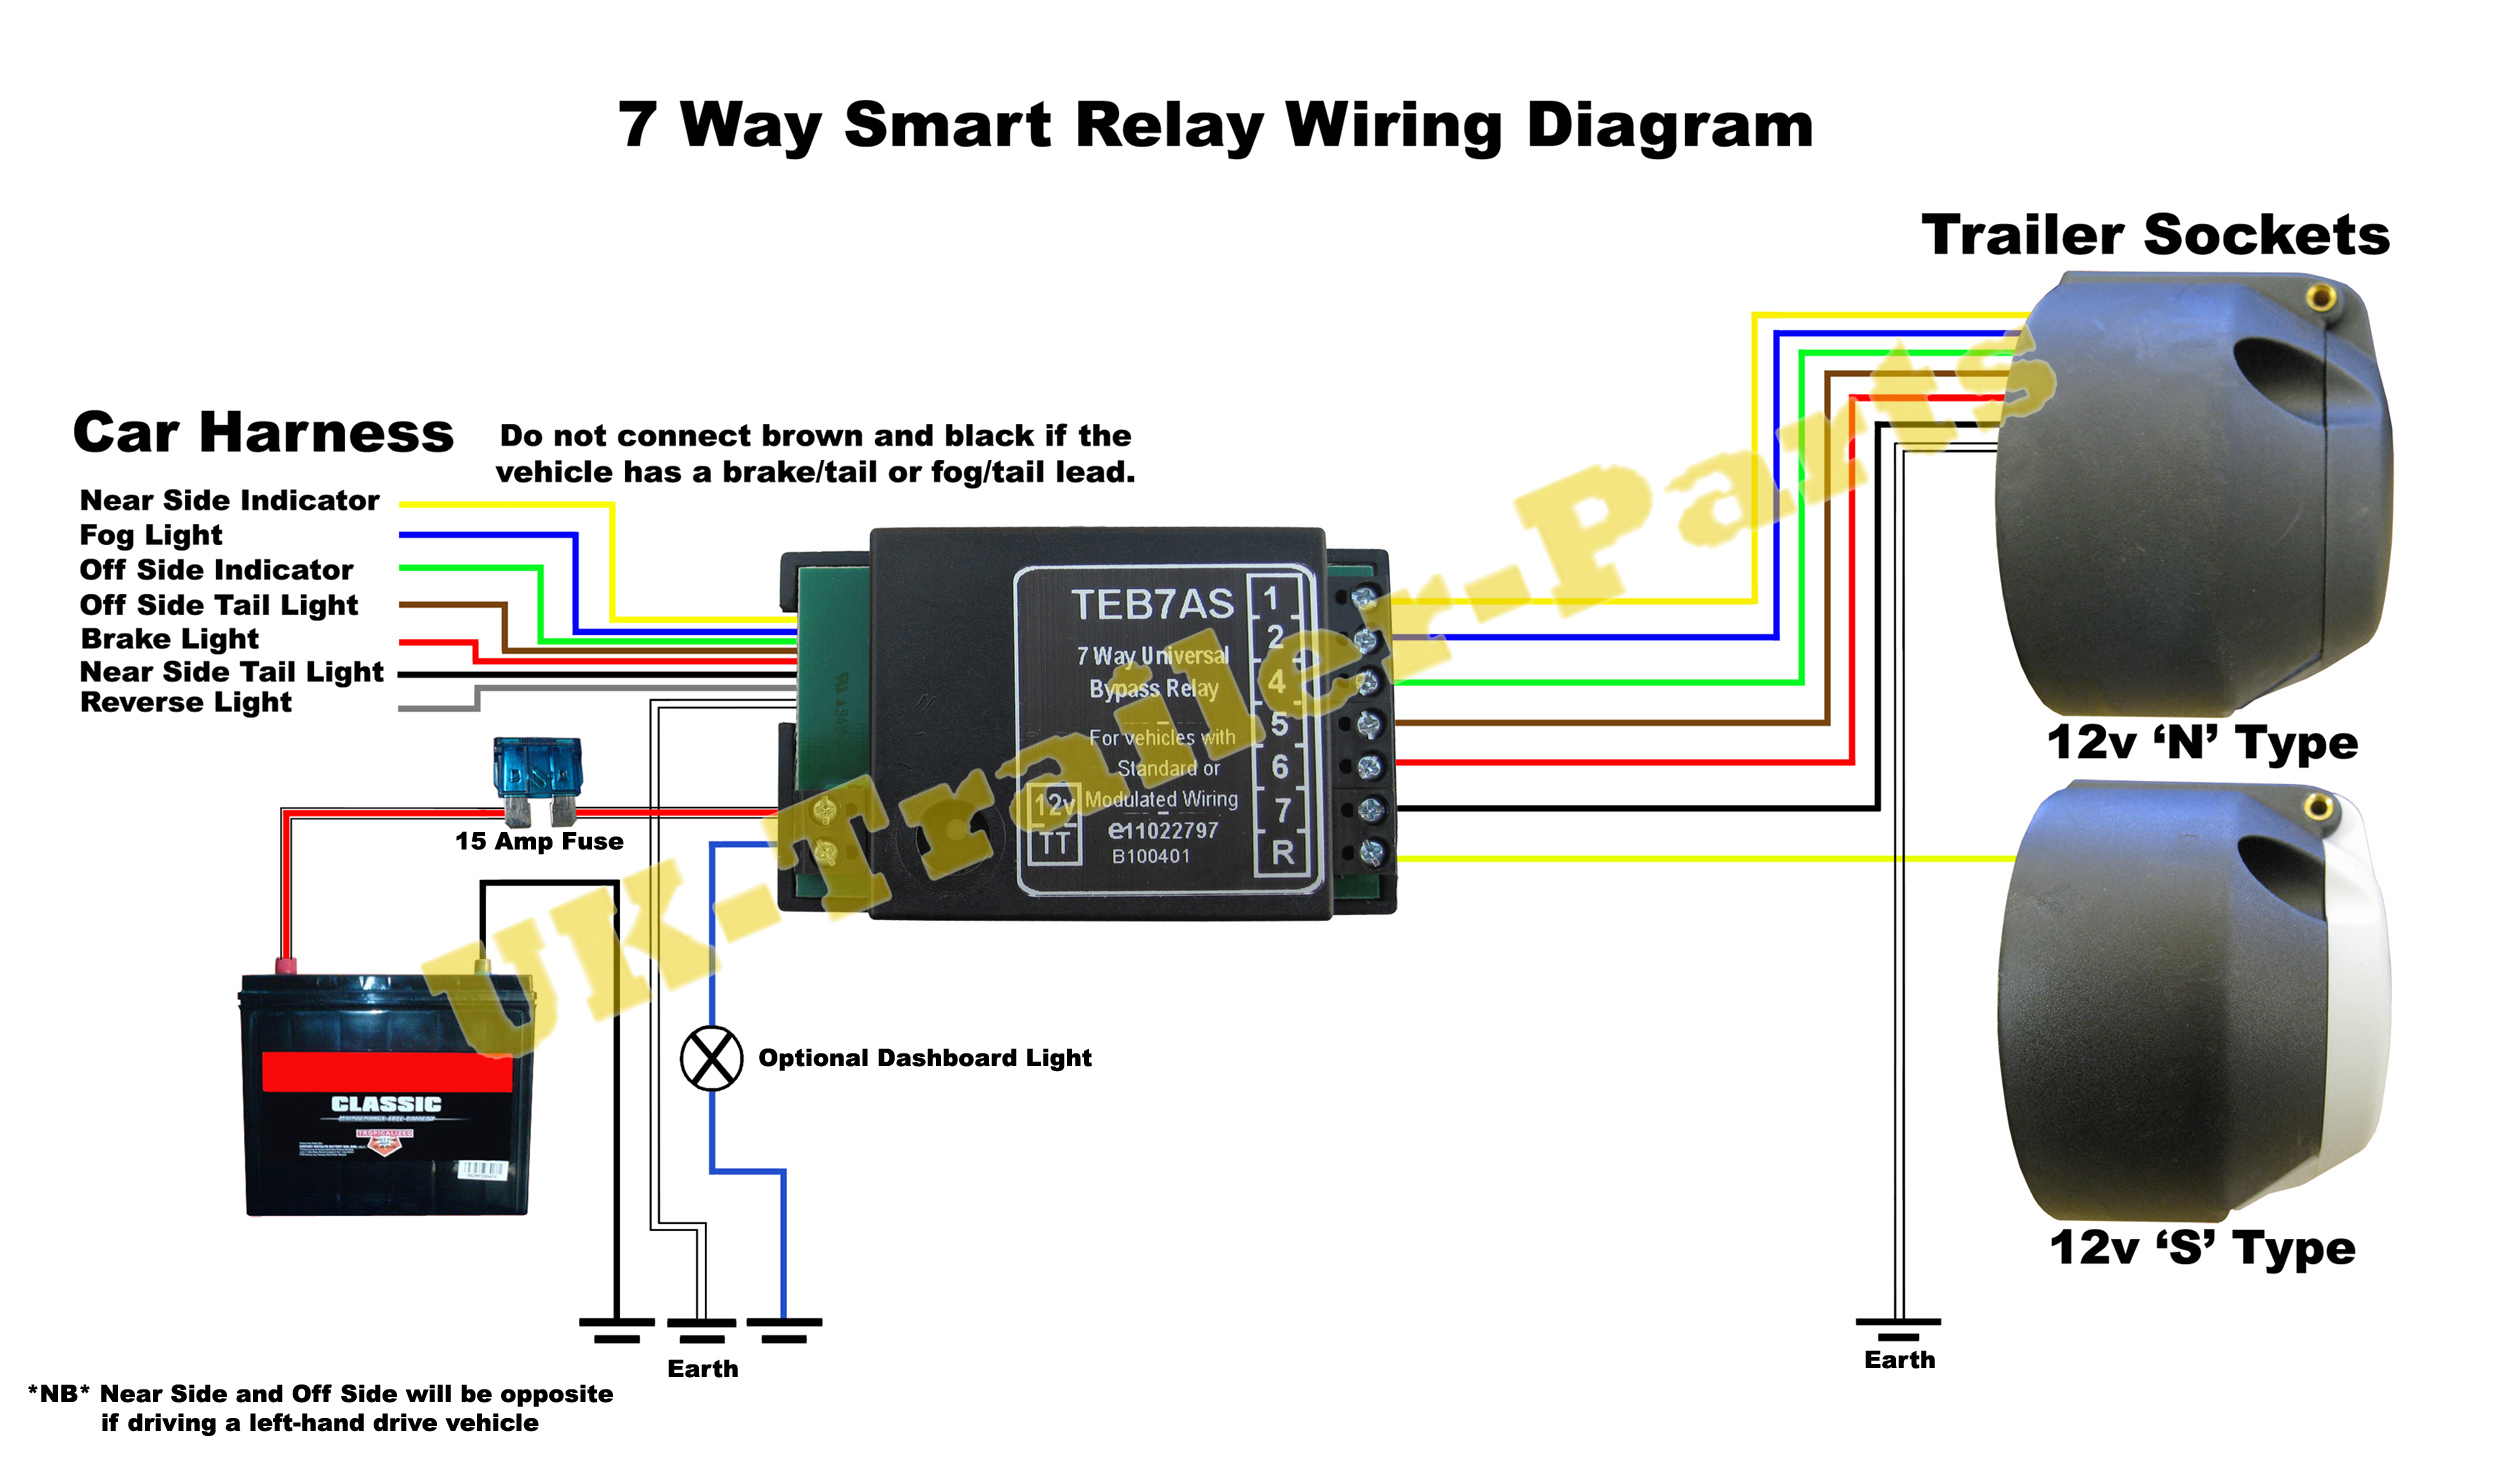 7 way universal bypass relay wiring diagram uk trailer parts swarovskicordoba Gallery